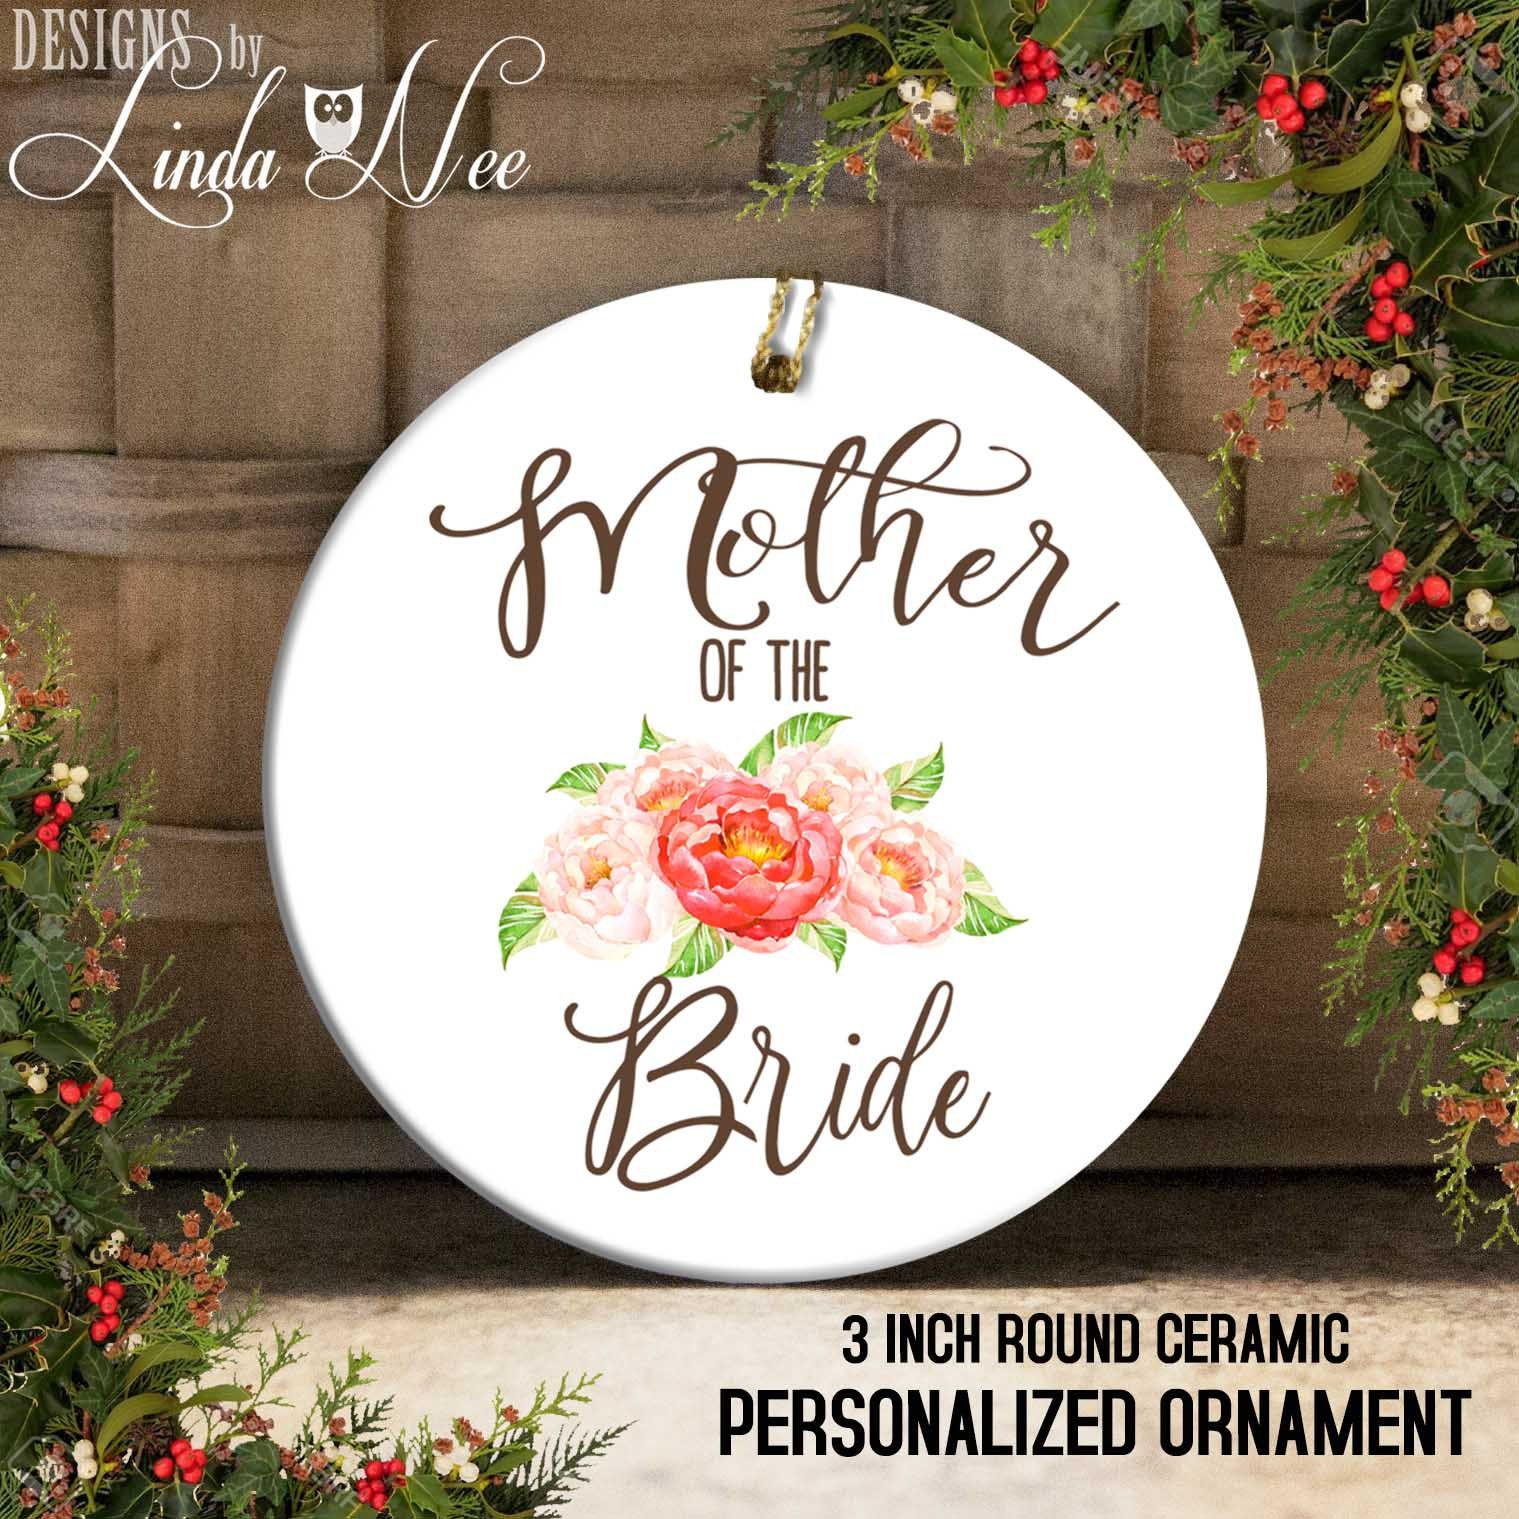 Mother of the bride gift mother of the bride ornament do it personalized happiness is being a grandmother christmas ornament baby reveal ornament baby reveal gift grandmother mothers day solutioingenieria Gallery